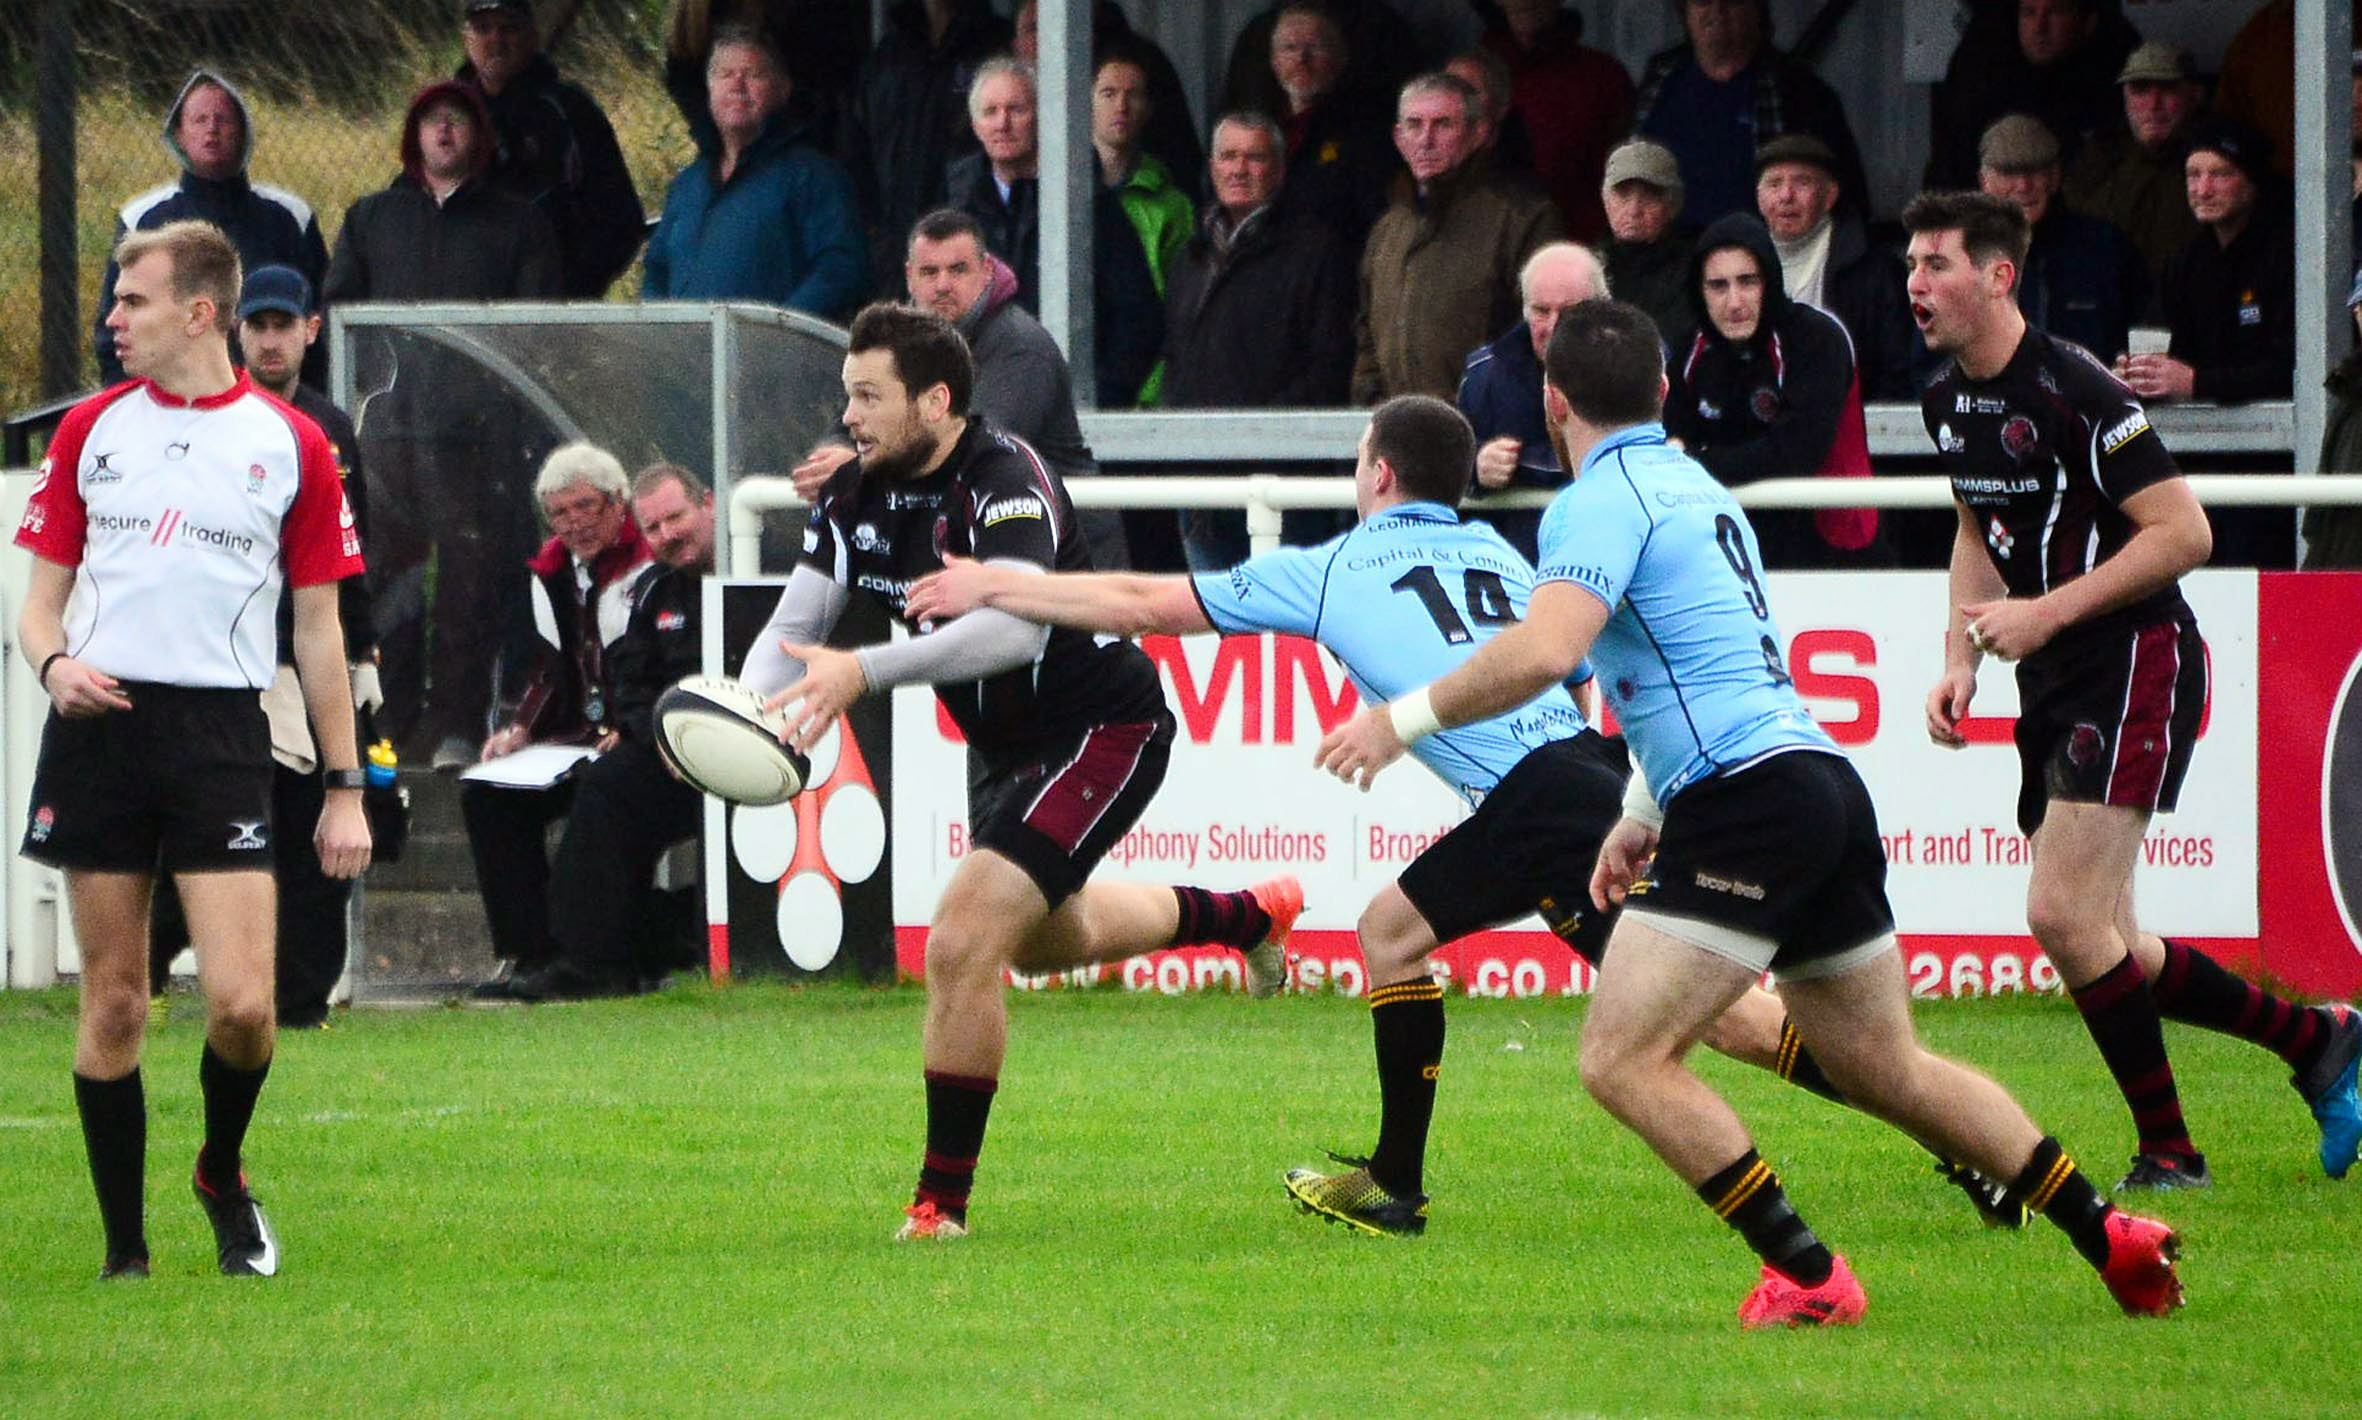 FUTURE: The way forward for Taunton Rugby Club was up for discussion. Pic: Steve Richardson